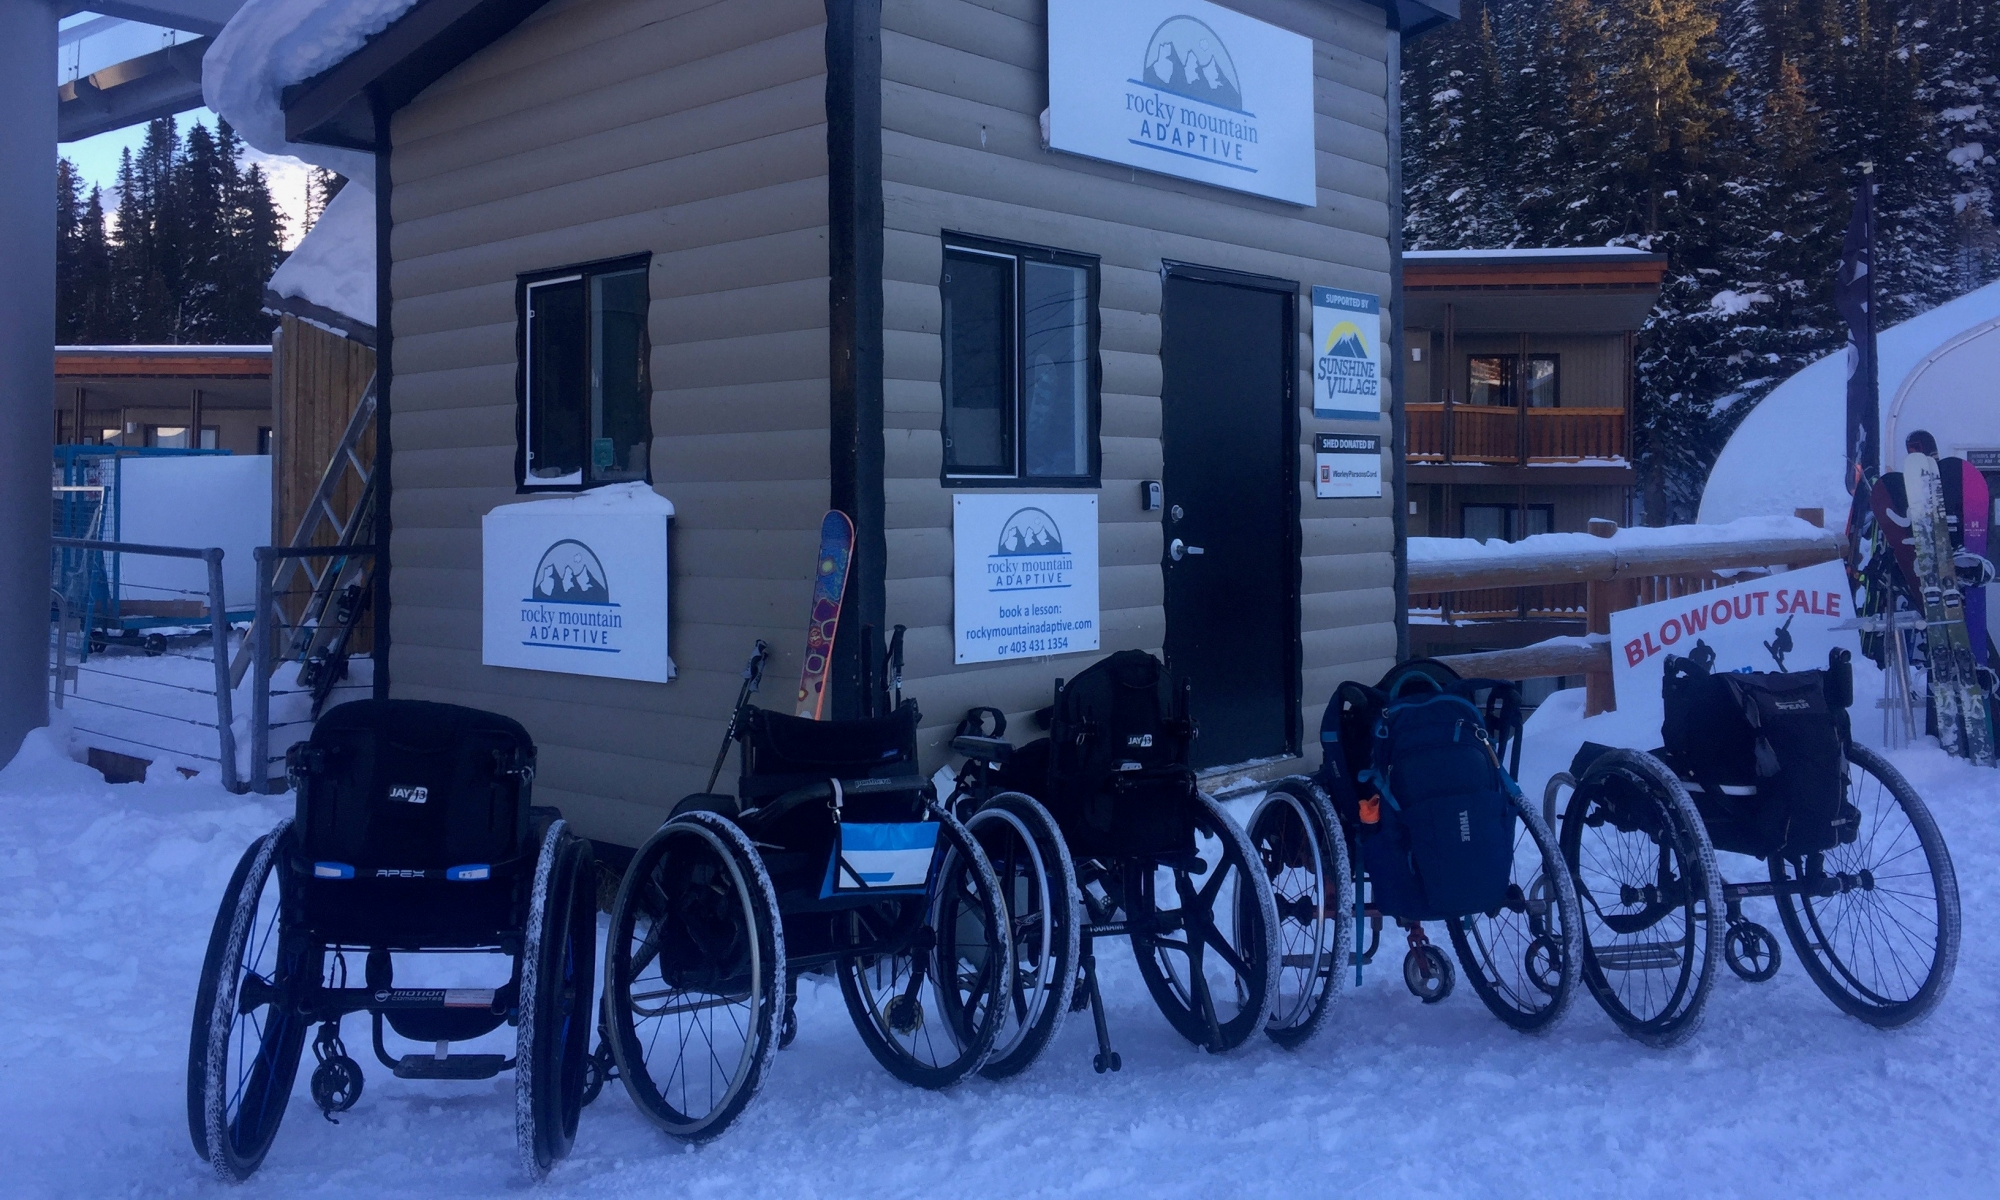 Wheelchairs in front of a skiing shed